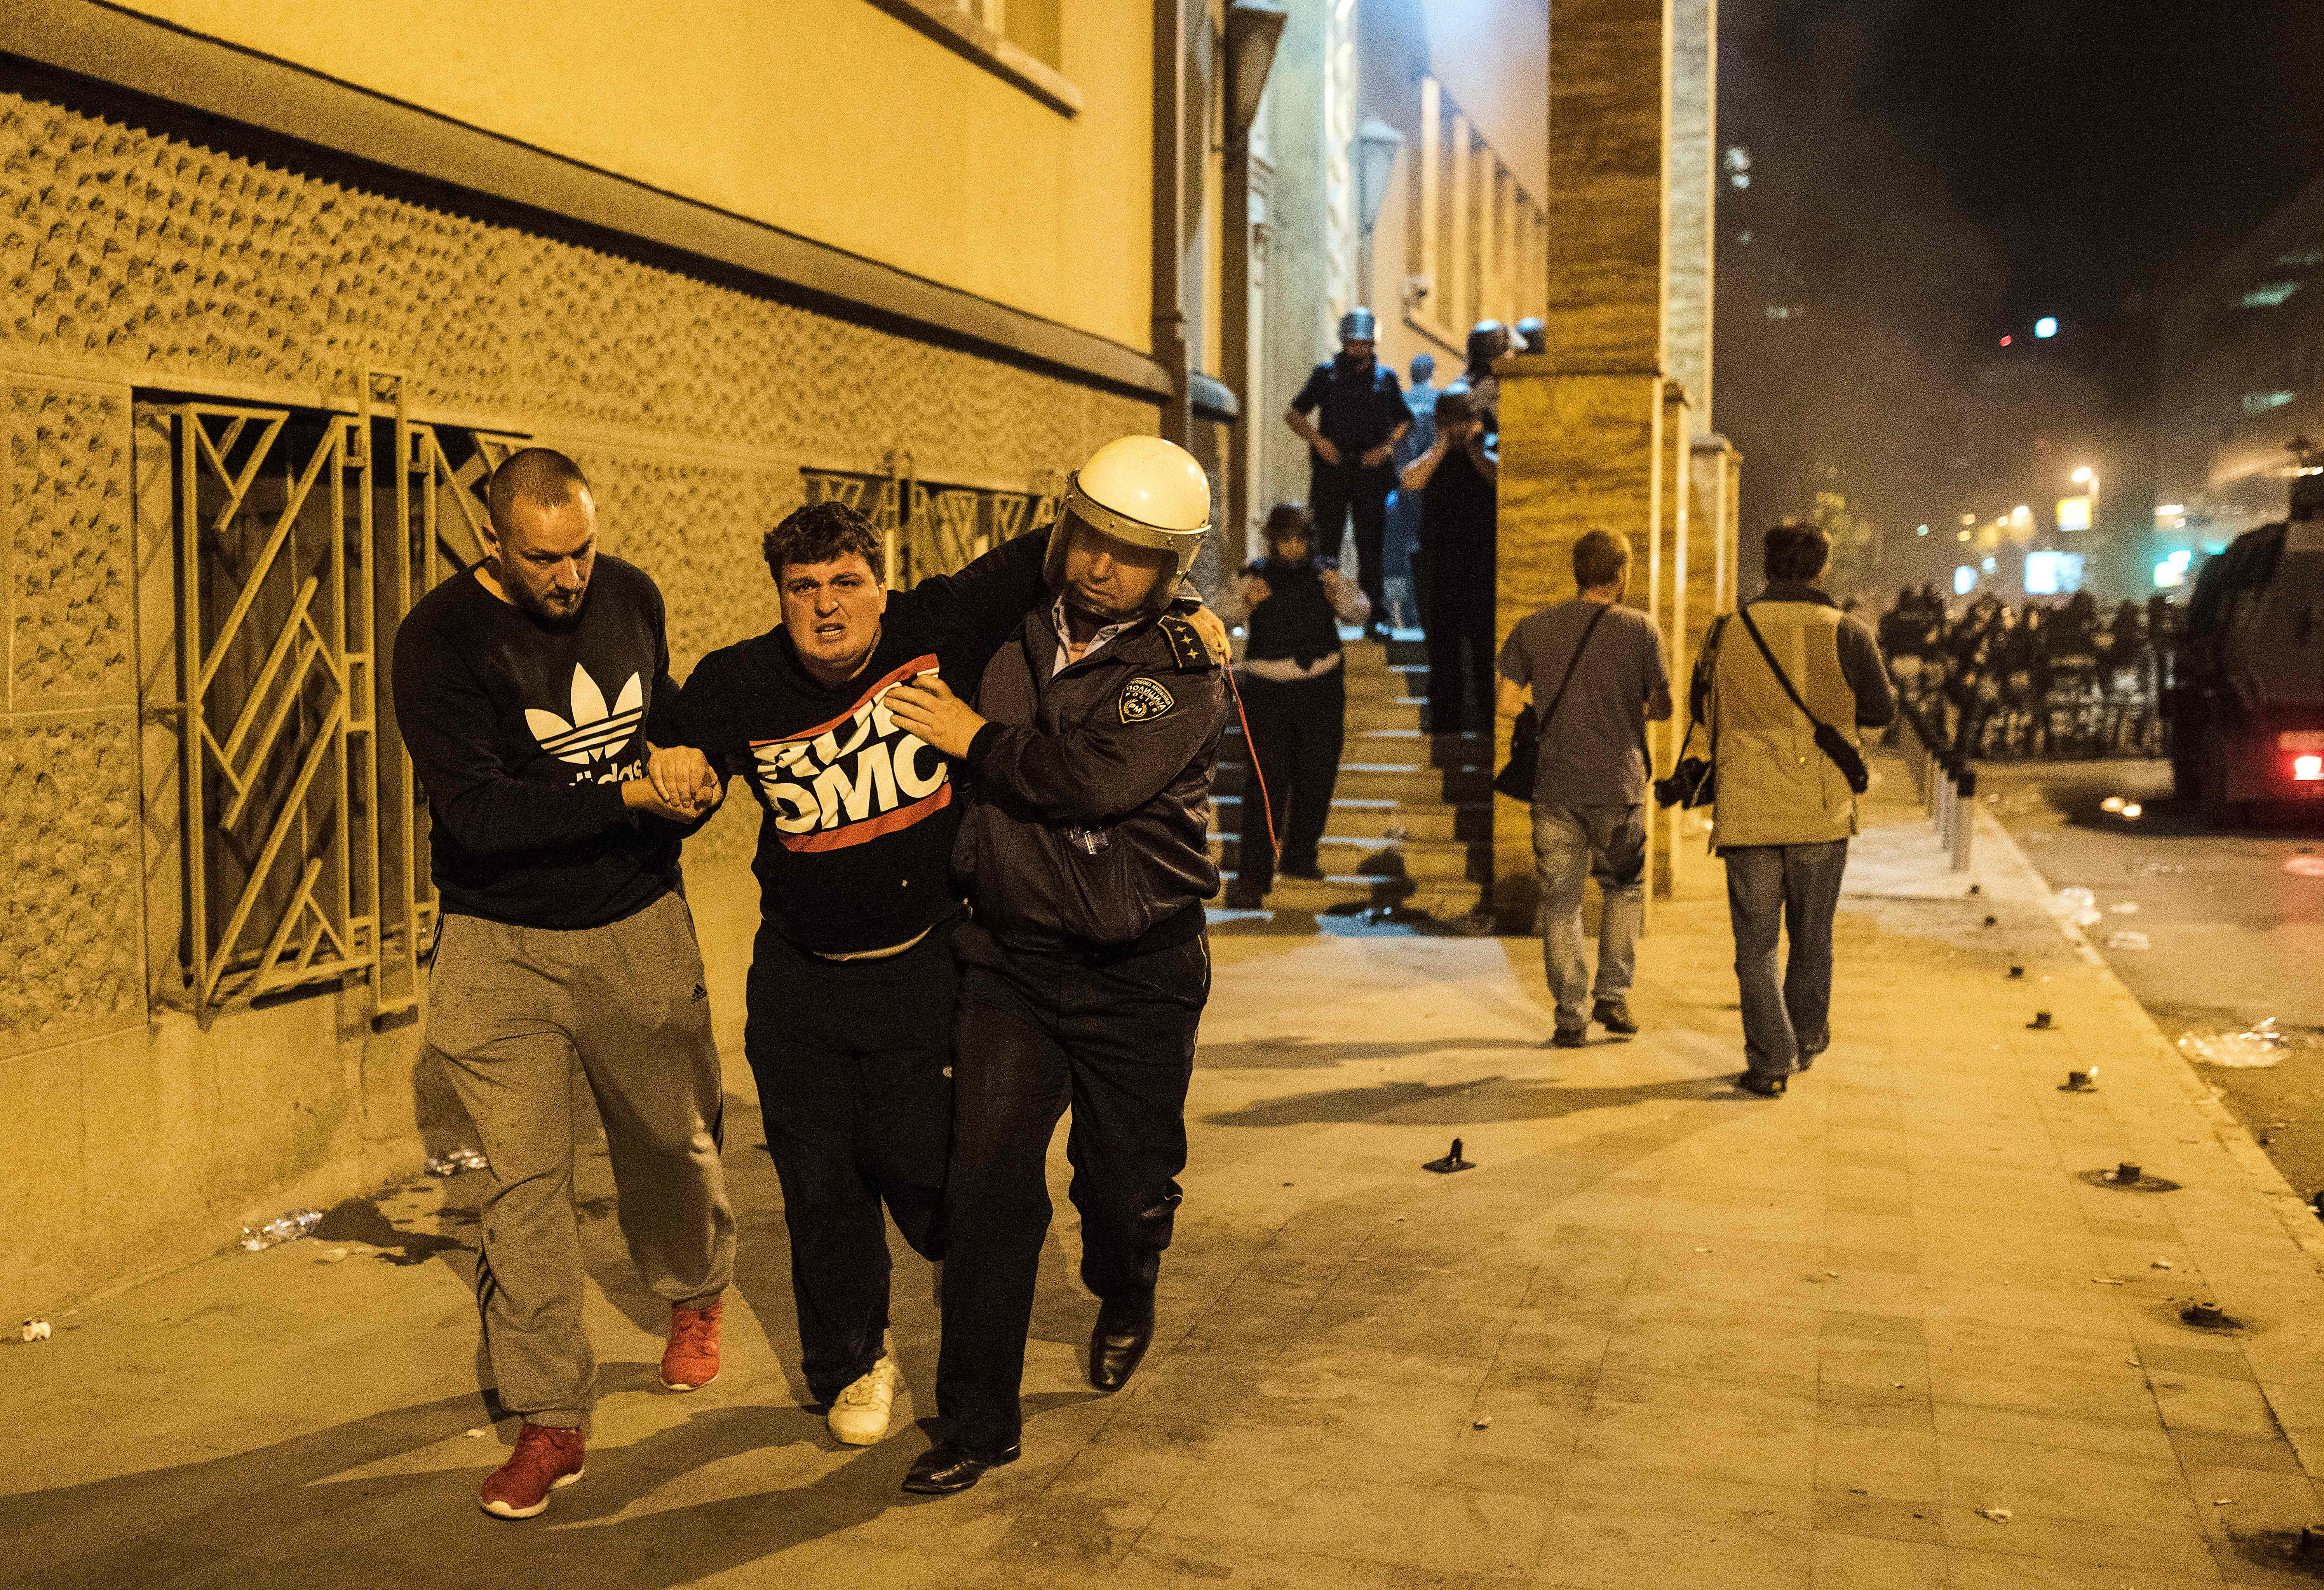 Policemen carry an injured man as protesters clash with police after the governing Social Democrats and ethnic Albanian parties voted to elect an Albanian as parliament speaker in Skopje on April 27, 2017. Macedonia's opposition leader was among at least 10 people injured in parliament on April 27 after protesters stormed the building following an allegedly unfair vote for a parliamentary speaker, witnesses and local media reported. The violence erupted after around 100 protesters supporting the rival VMRO-DPMNE party entered parliament waving Macedonian flags and singing the national anthem. / AFP PHOTO / Robert ATANASOVSKI / TT / kod 444